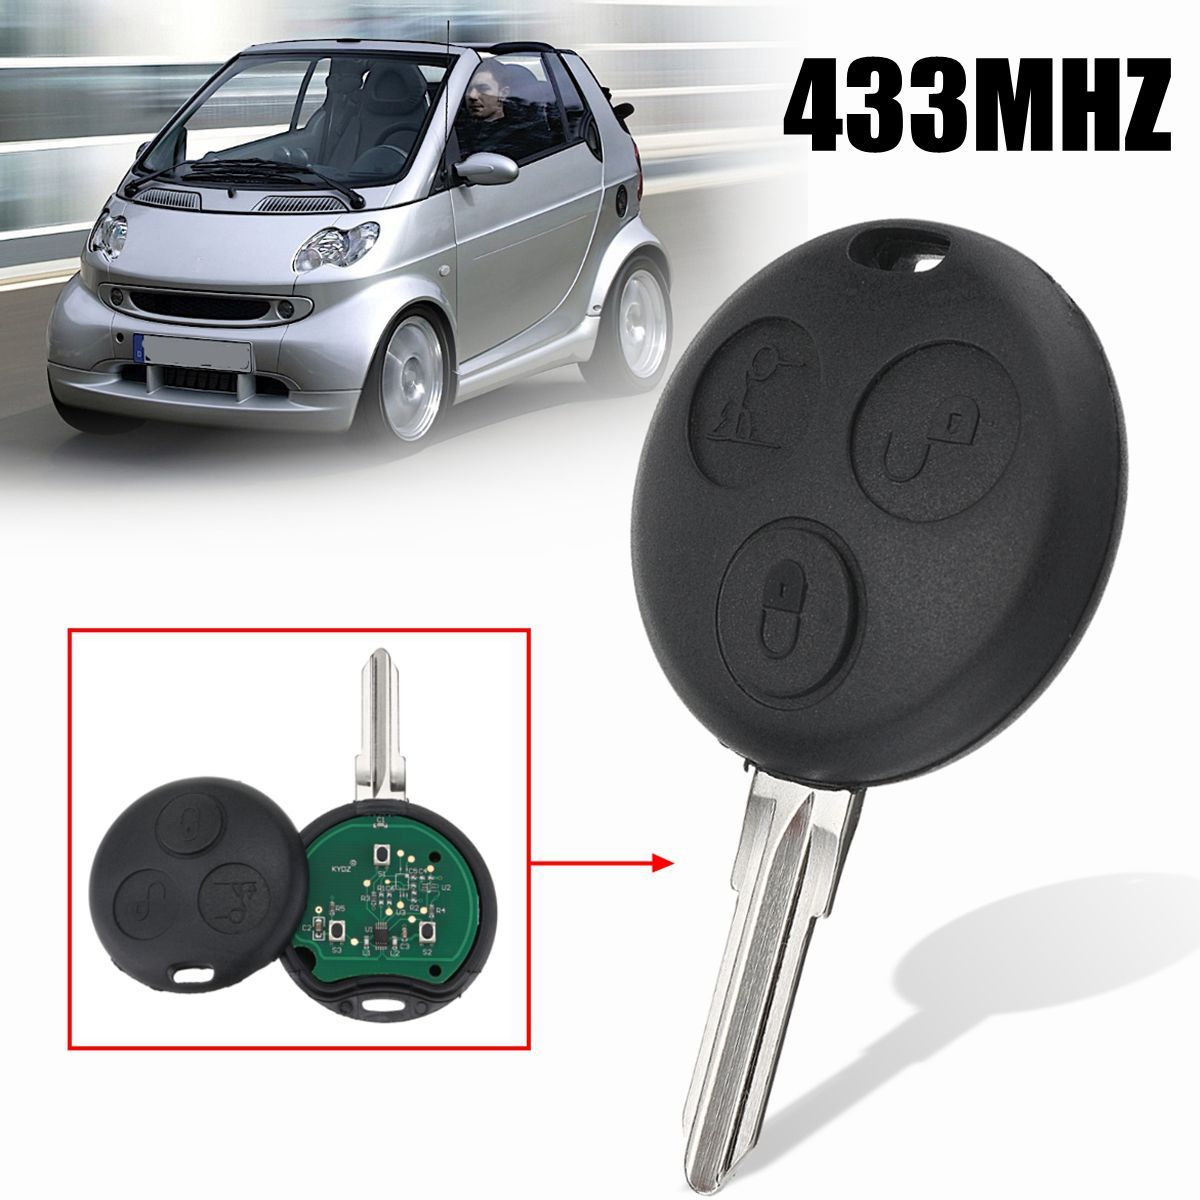 3 Buttons Car Remote Key Fob Case Shell with Chip 433Mhz For Mercedes/Benz Smart City Passion Pulse Roadster ForTwo 2002 2003